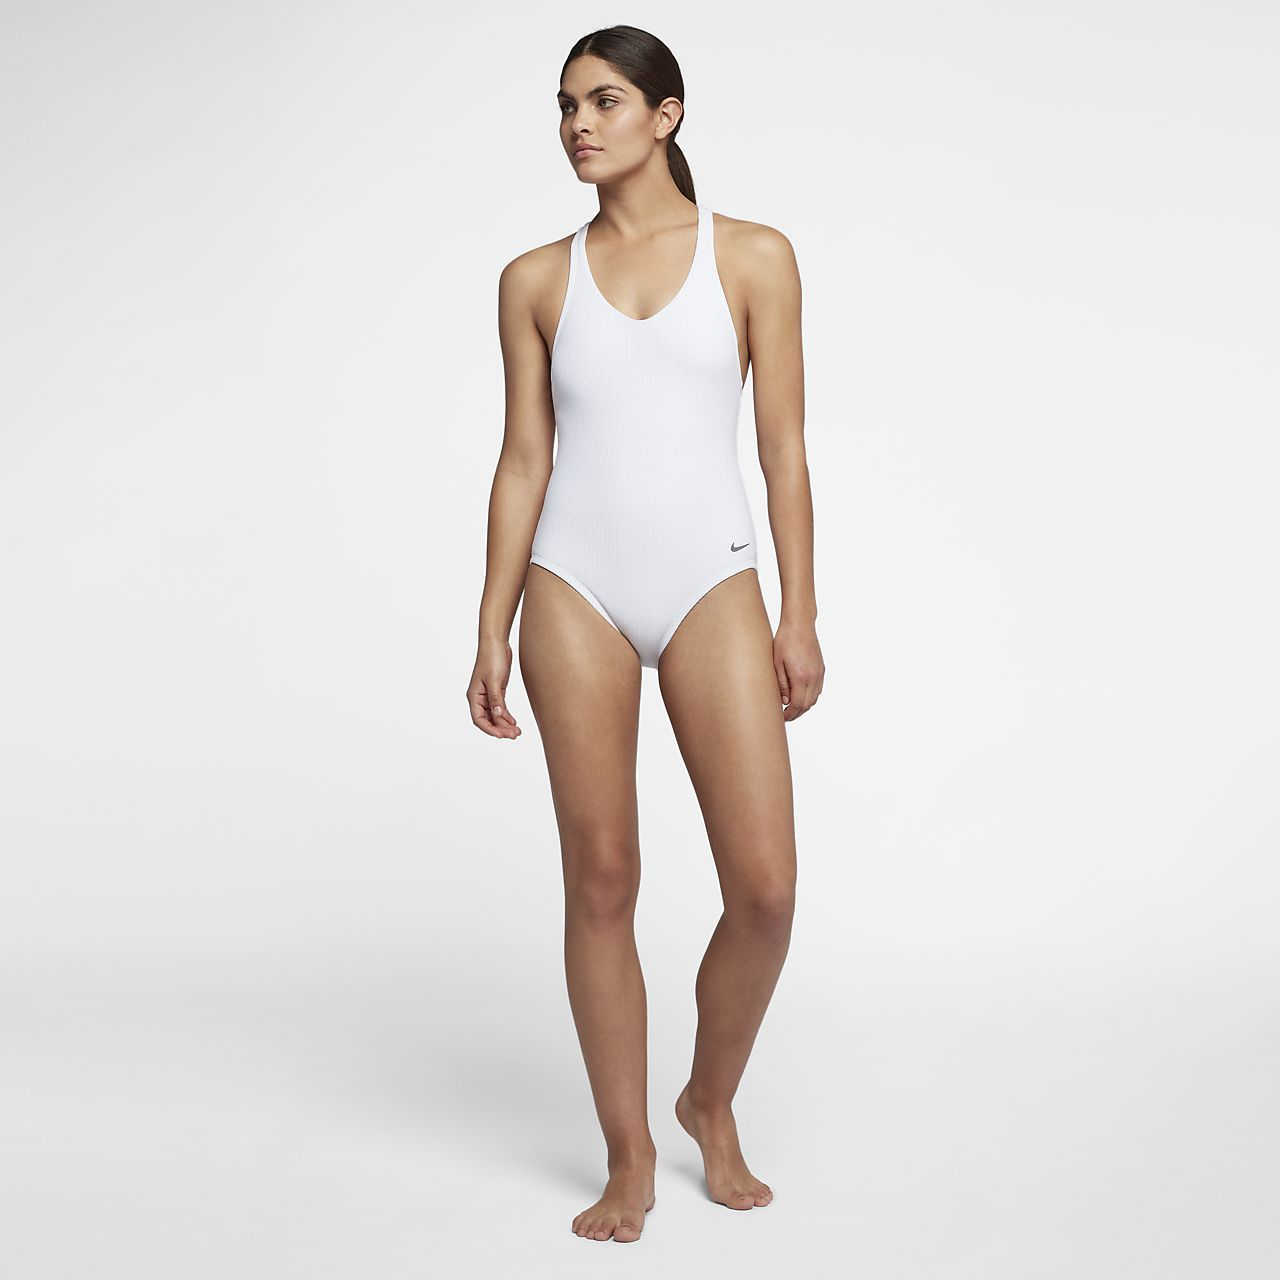 a7d6ae537d71c Nike Rib Racerback One-Piece Women's Swimsuit | self adorning in ...